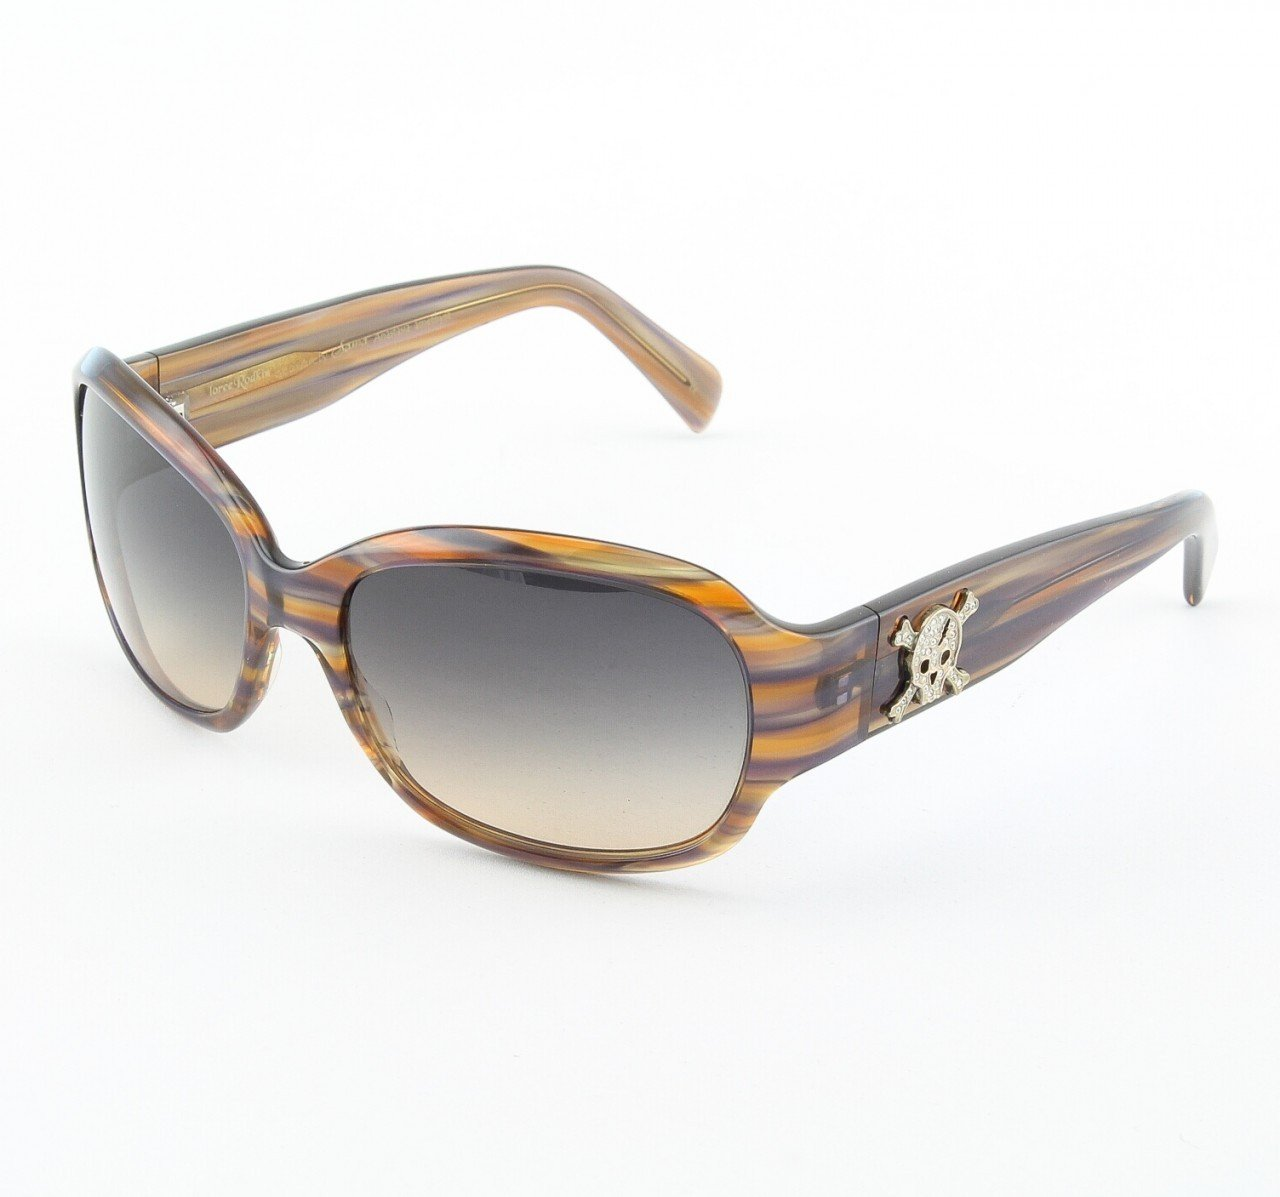 Loree Rodkin Anastasia Sunglasses by Sama Col. Amethyst and Tortoise with Brown Gradient Lenses